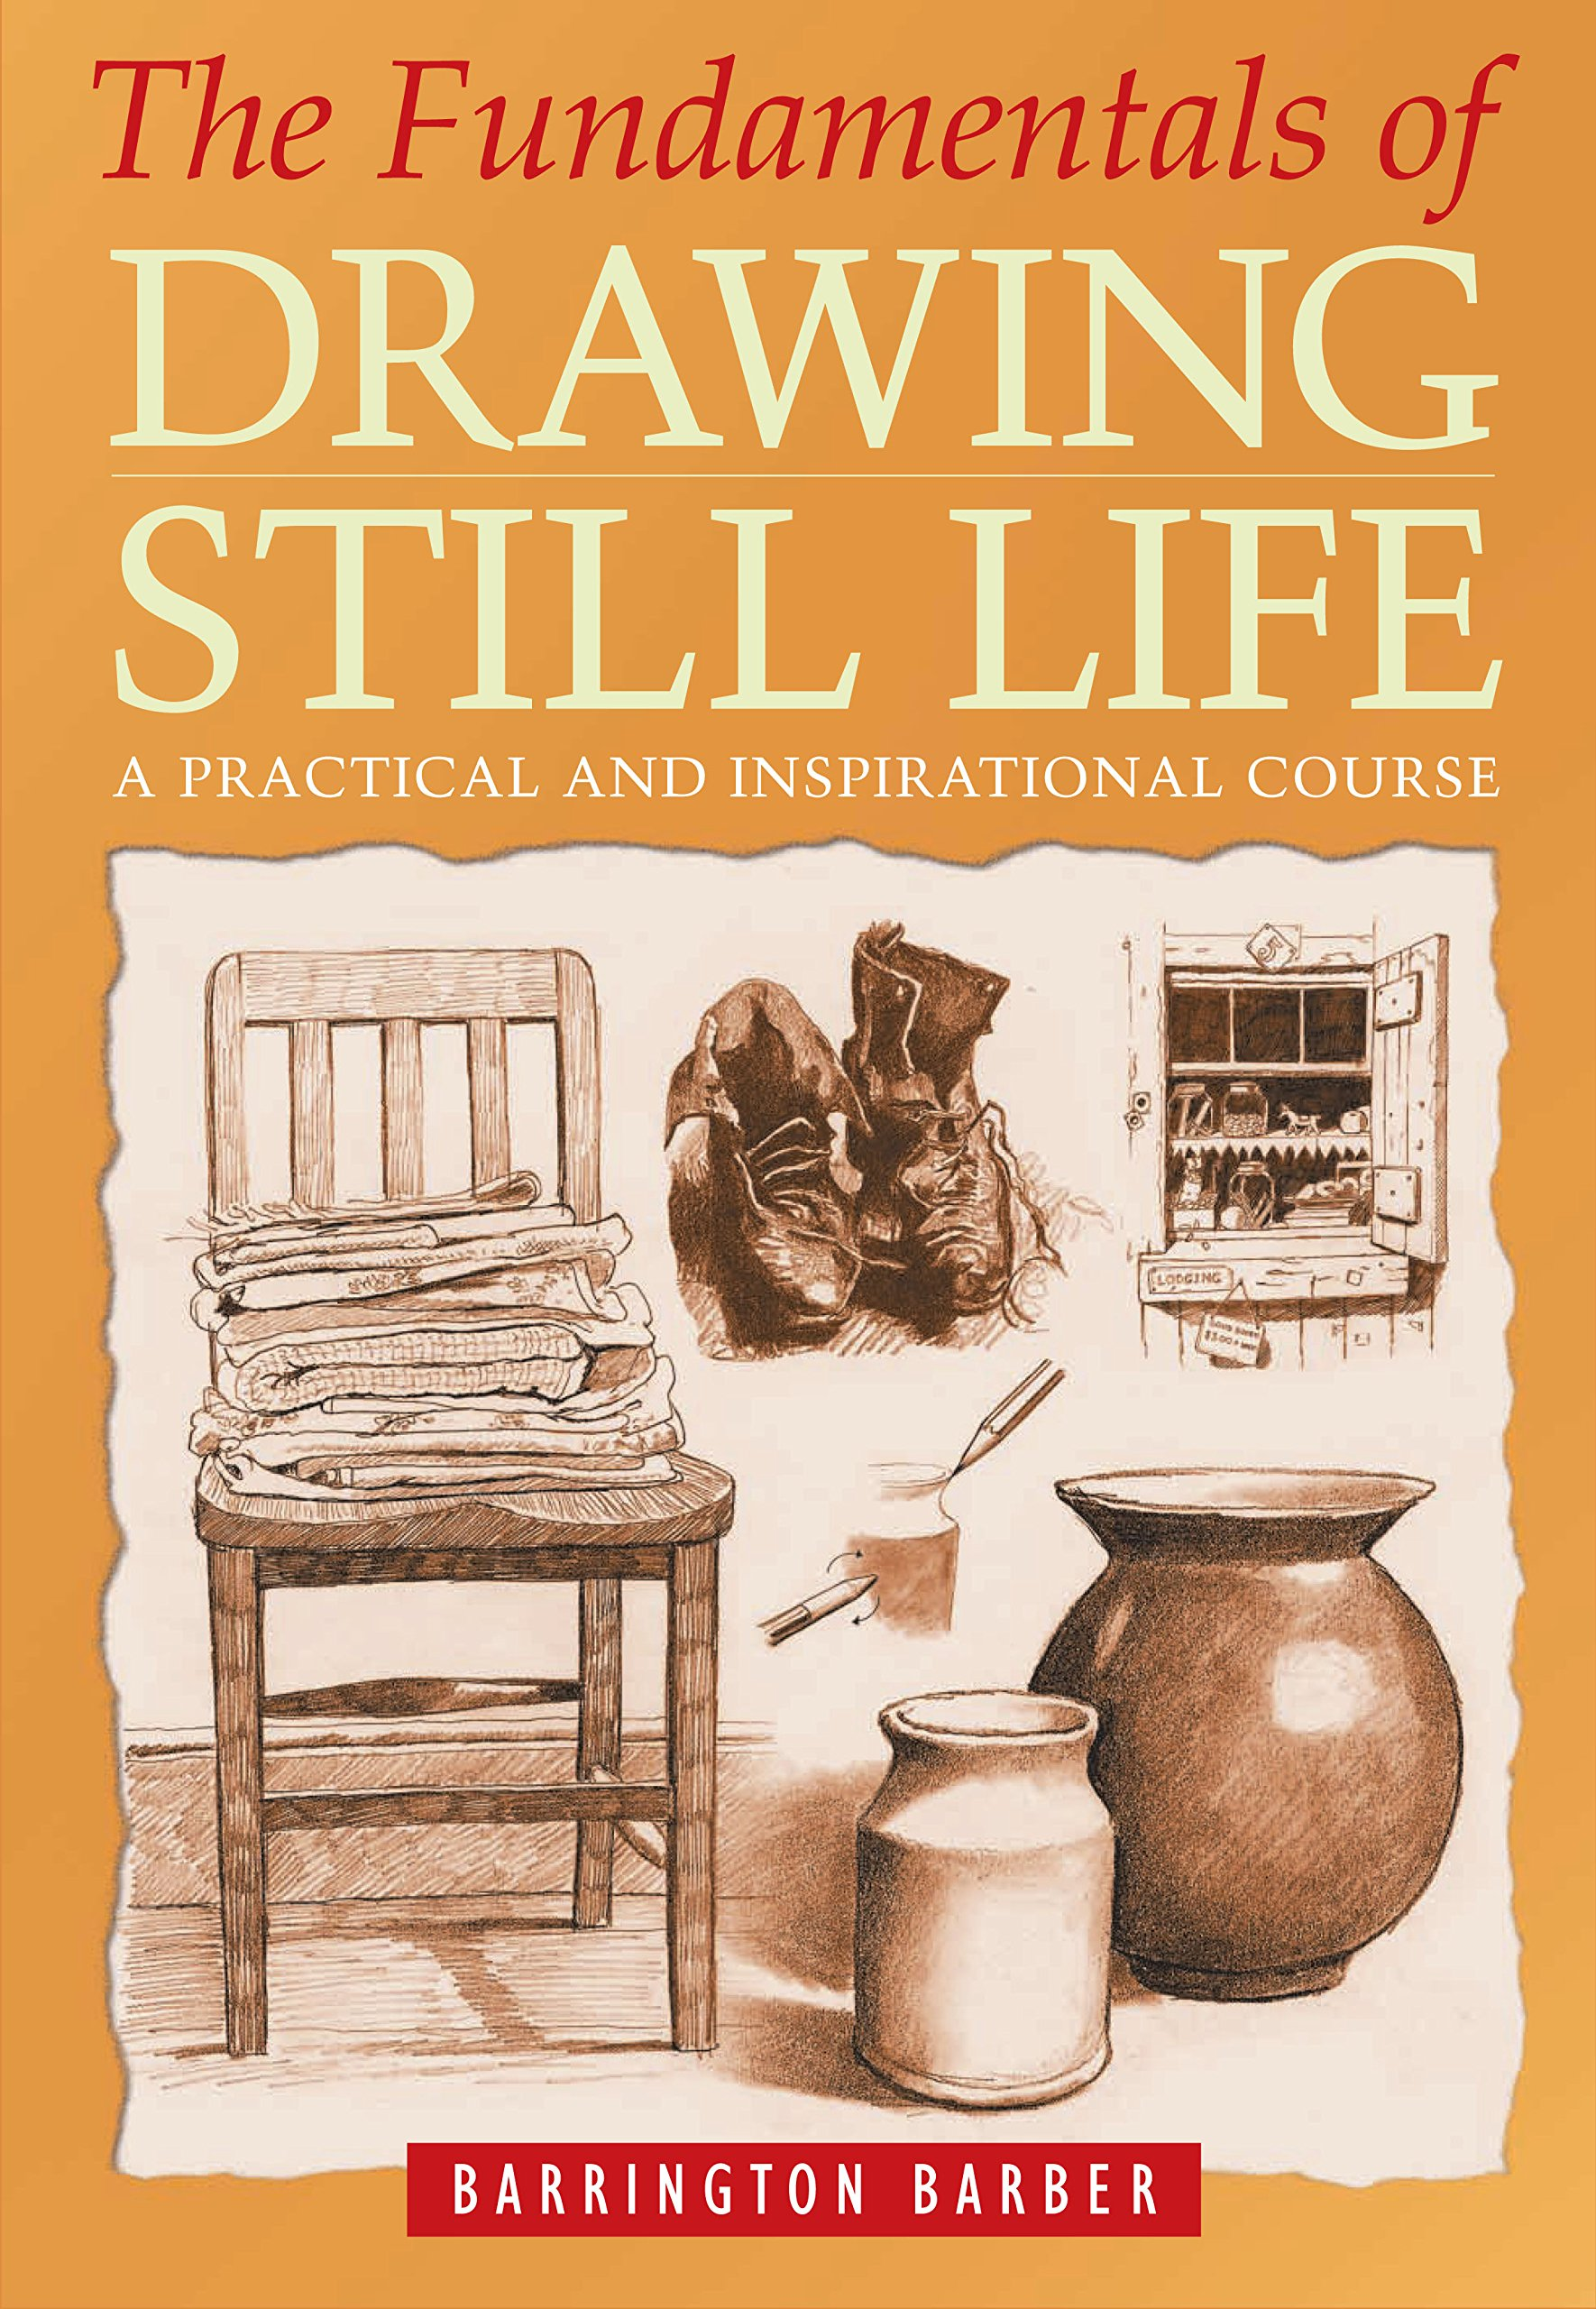 The Fundamentals of Drawing Still Life: A Practical Course for Artists